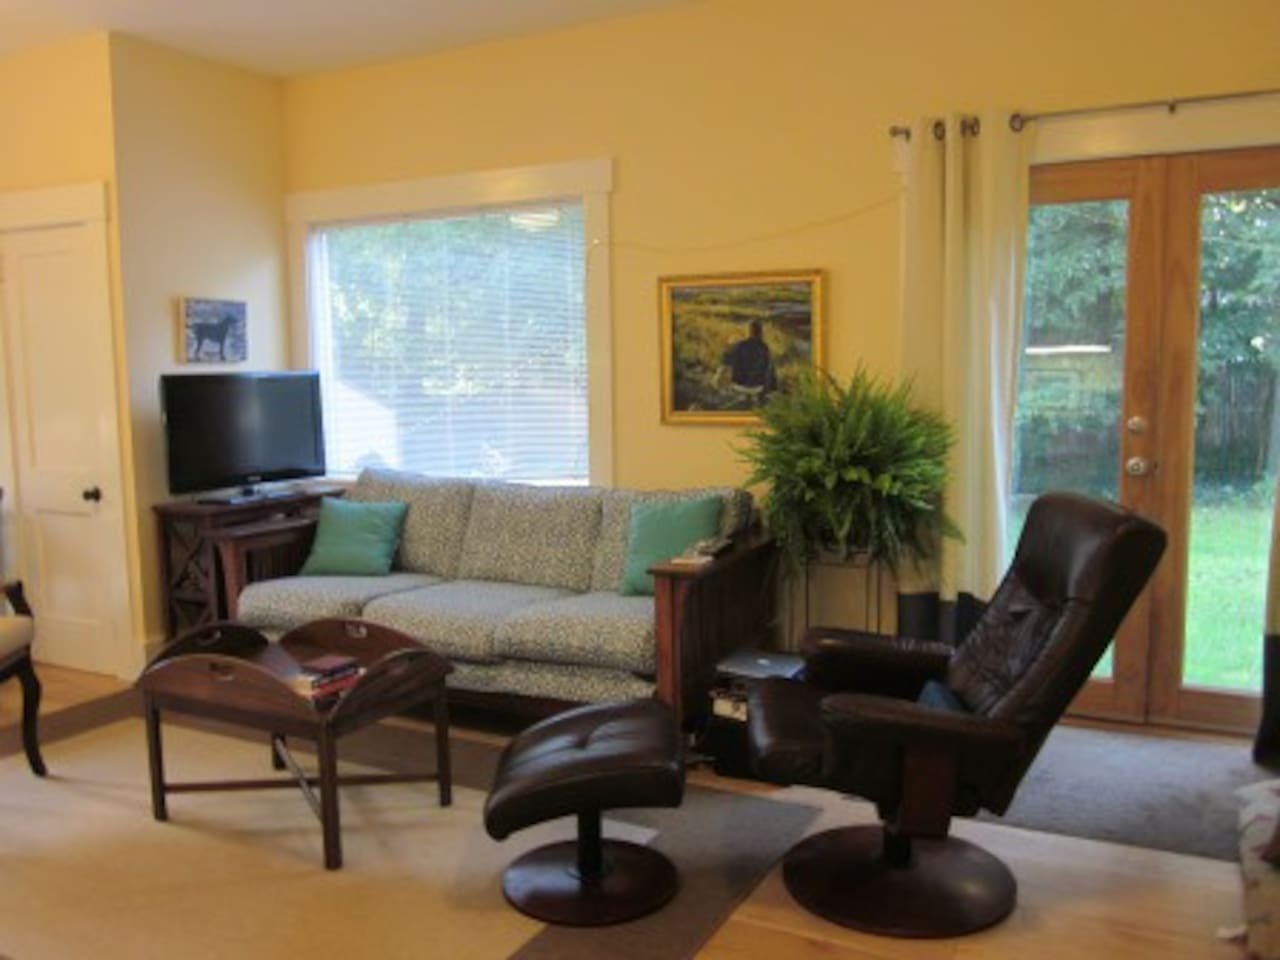 Cheerful and comfortable living room